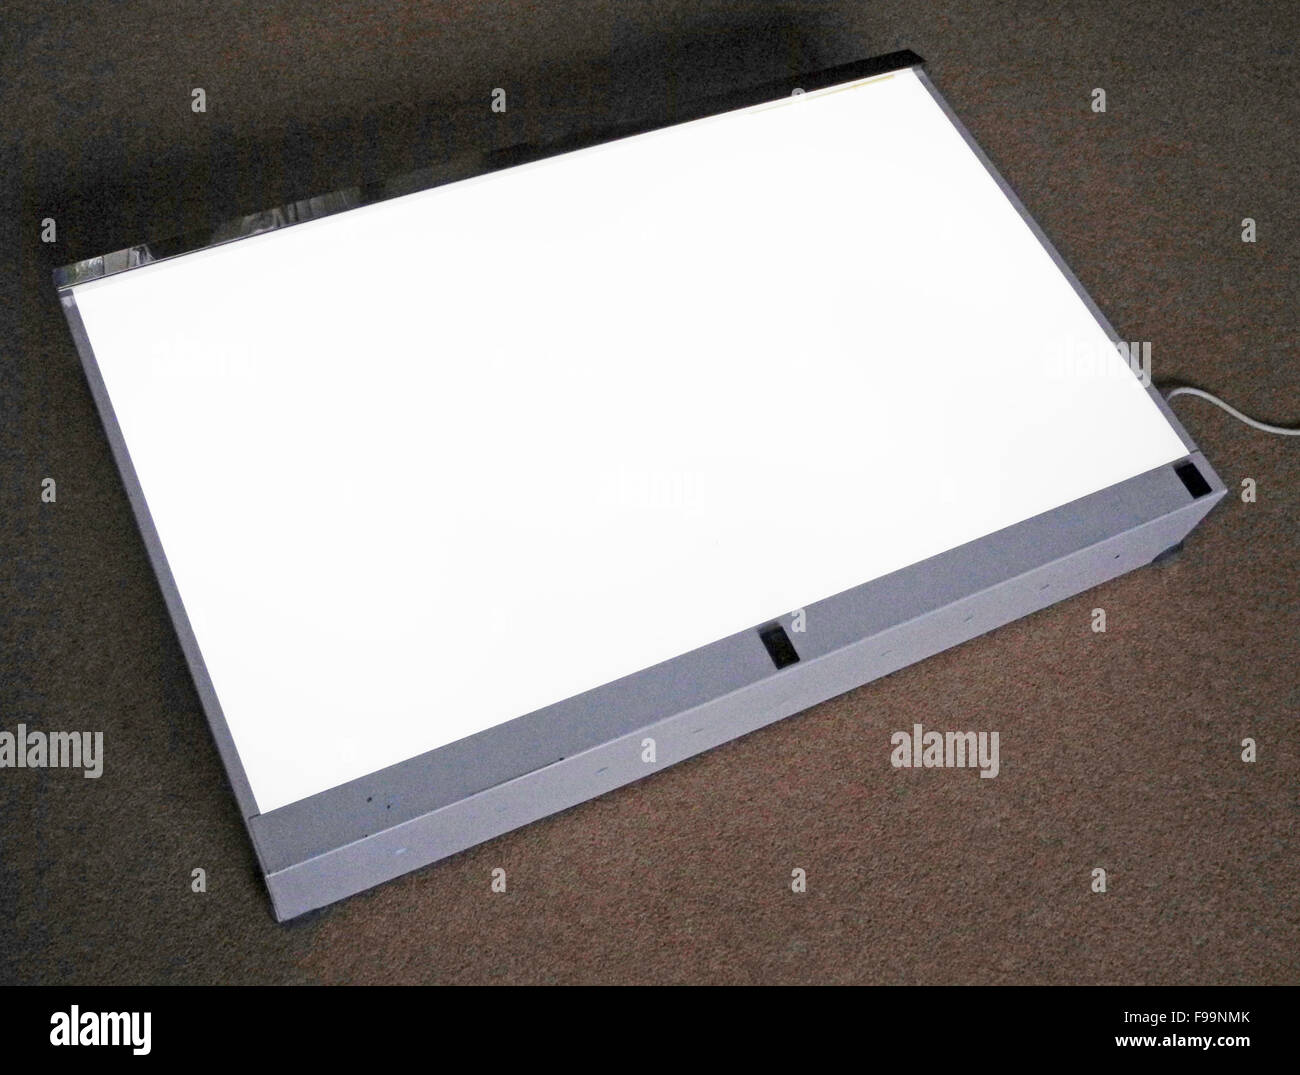 Lightbox viewing X-Rays transparencies graphic artwork - Stock Image